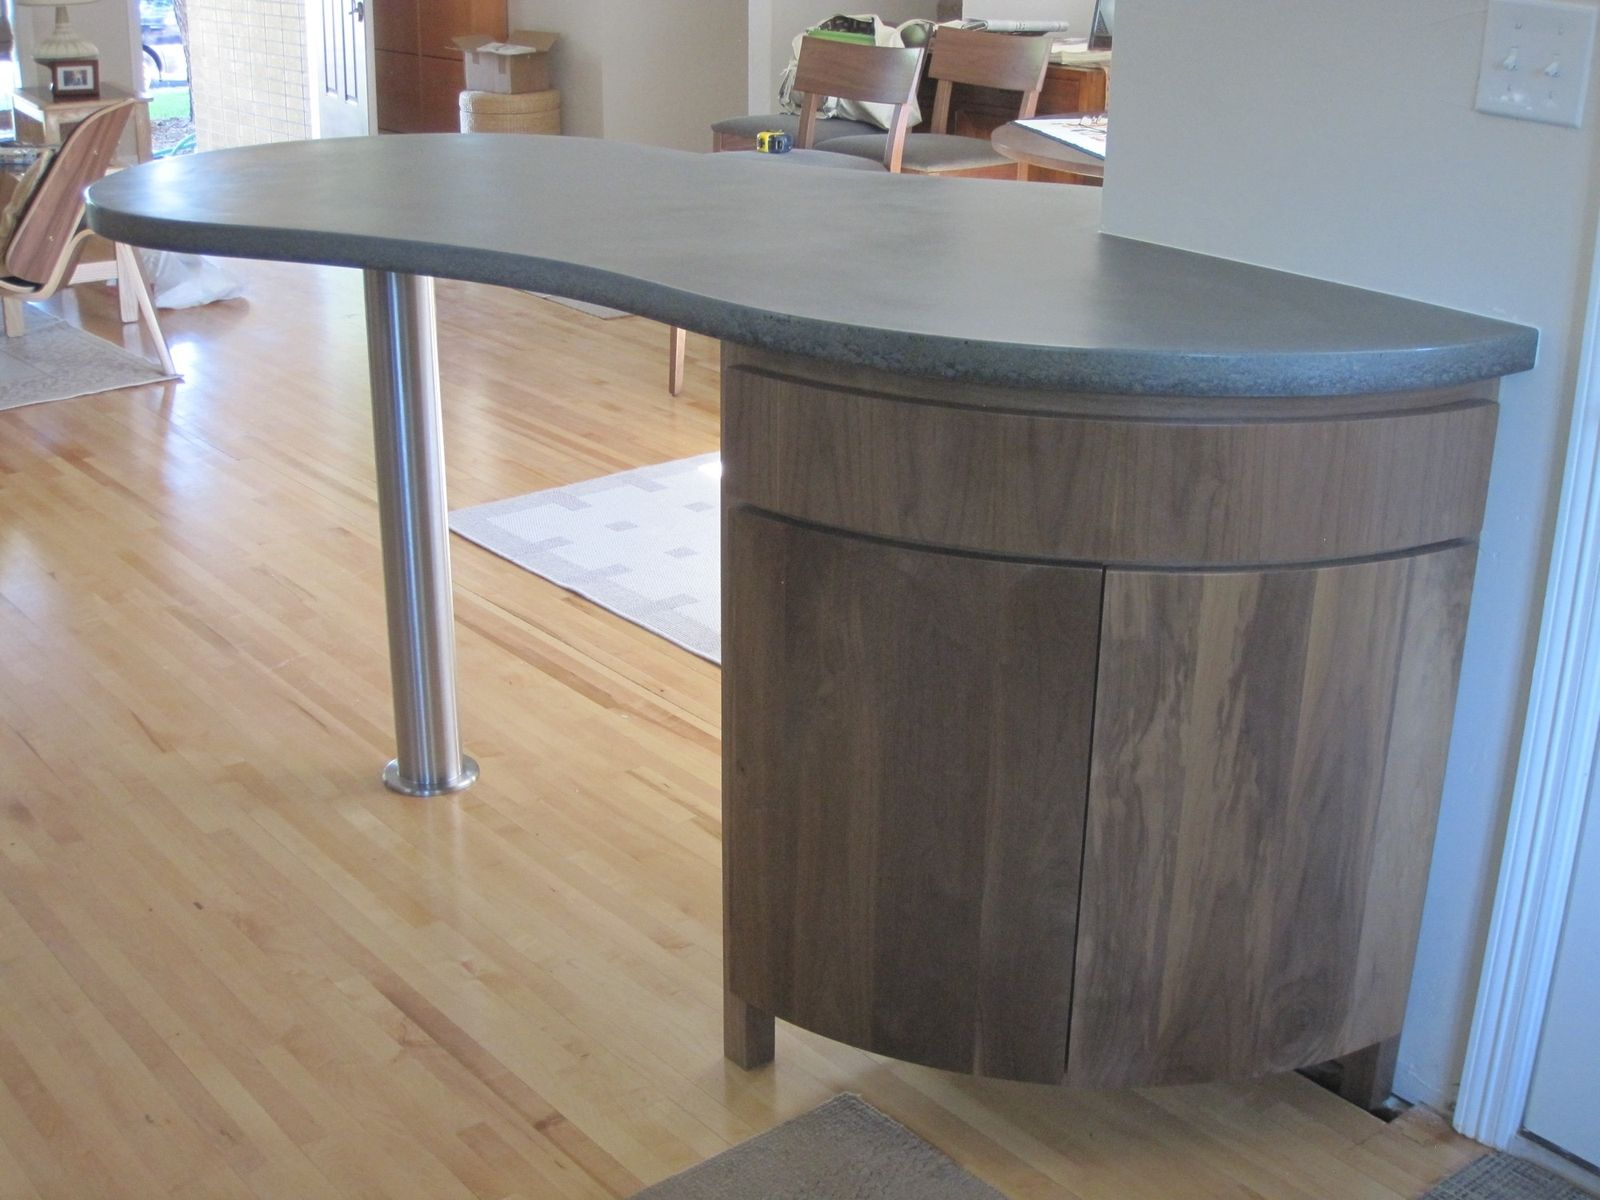 Hand Crafted Curved Kitchen Island Cabinet by Mcguire